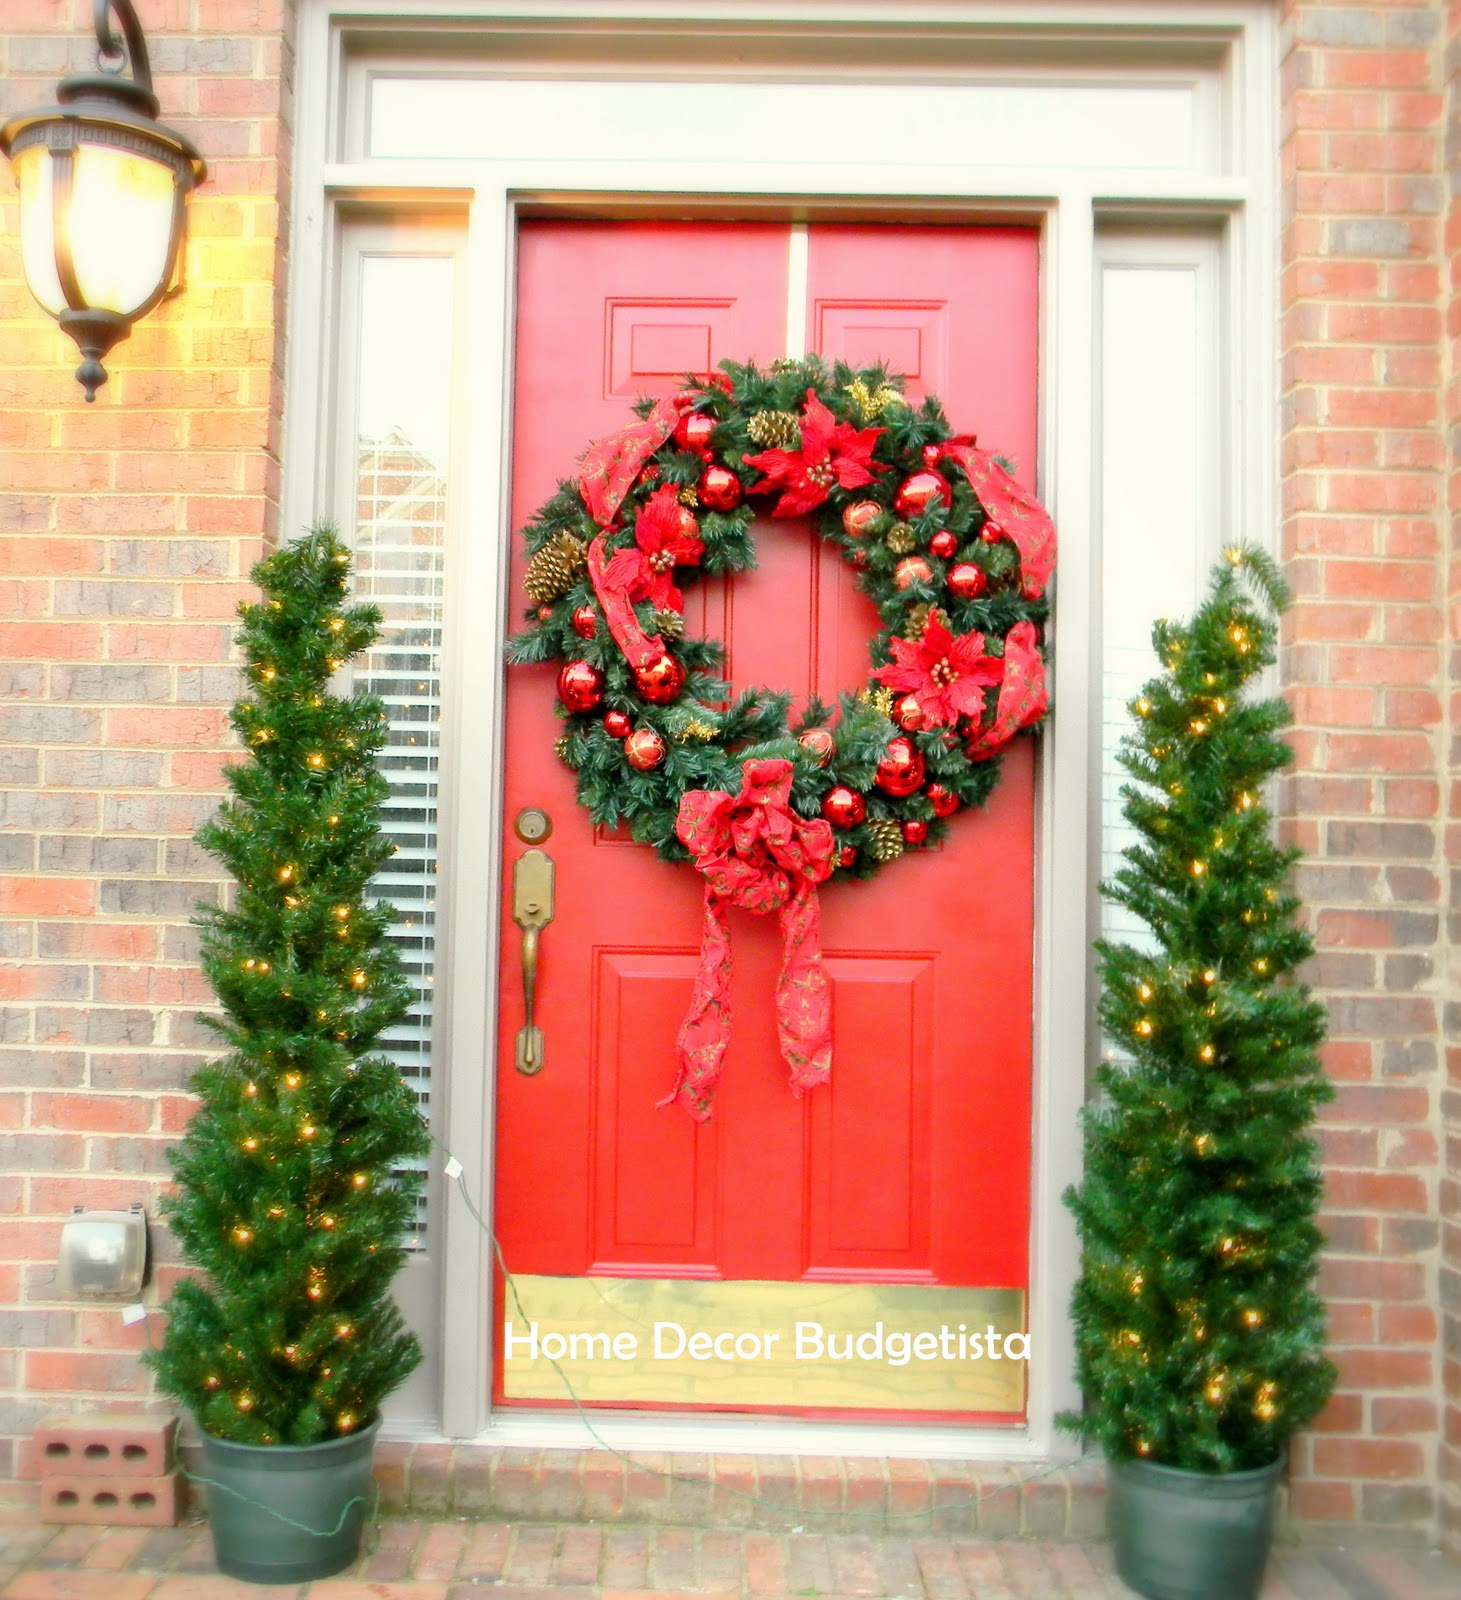 Front door christmas wreaths - A Jumbo Wreath With Jolly Decorations